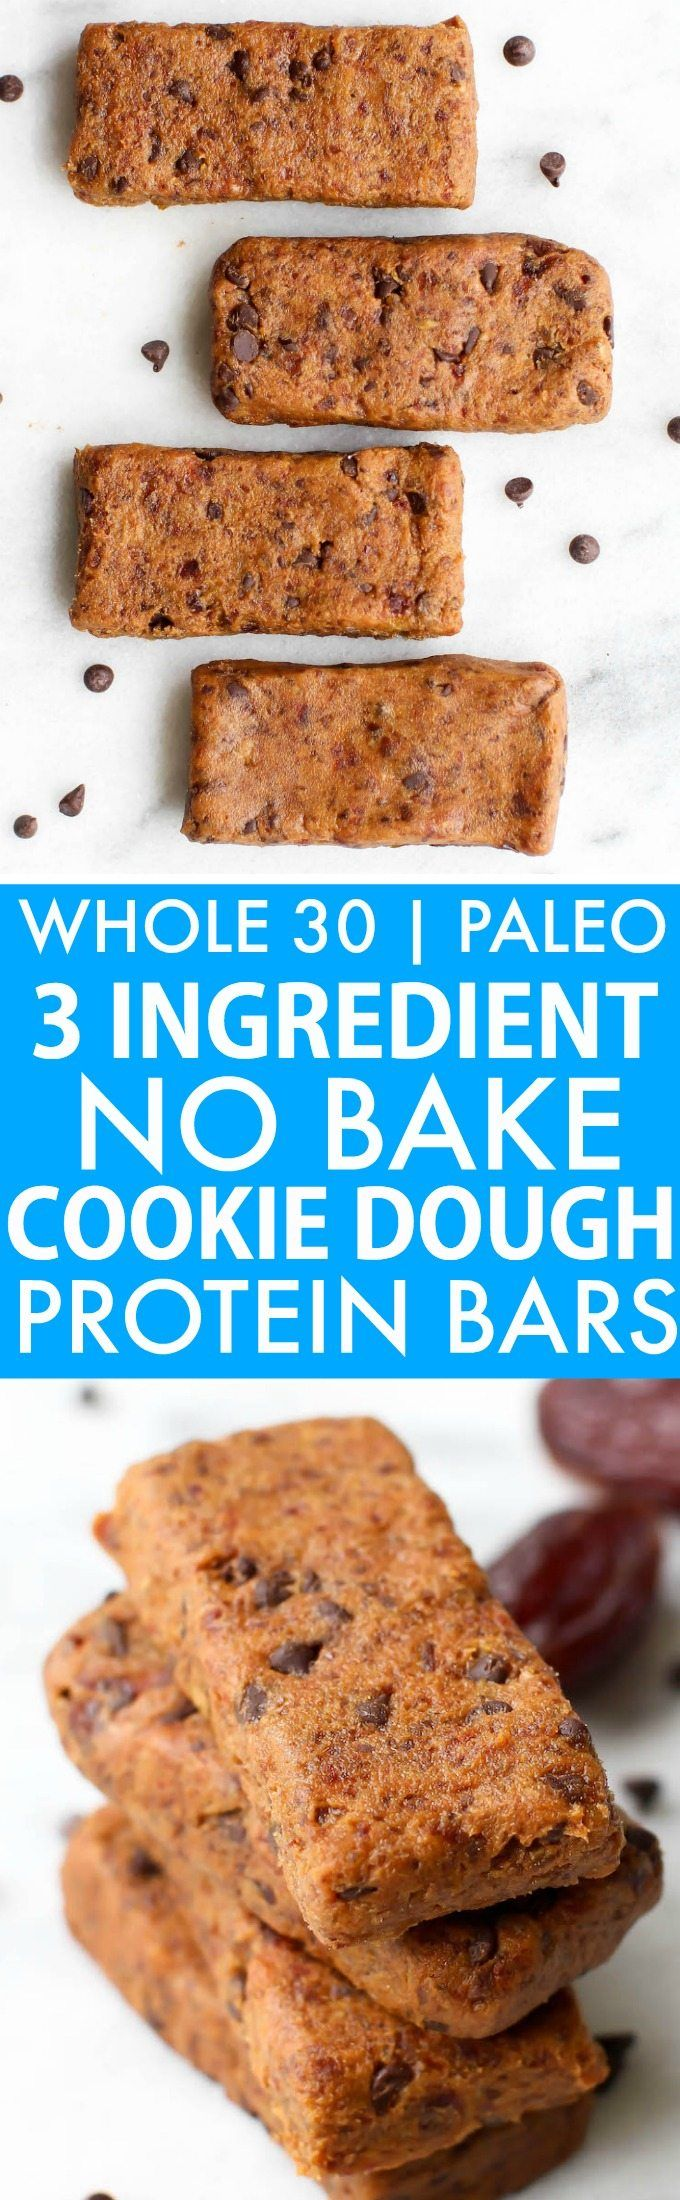 3 Ingredient No Bake Cookie Dough Protein Bars (Whole 30, Paleo, V, GF)- Whole30 approved and larabar copycat, these no bake bars are chewy and taste like cookie dough- Low sugar and packed with protein! {whole 30, vegan, gluten free, paleo recipe}- thebigmansworld.com